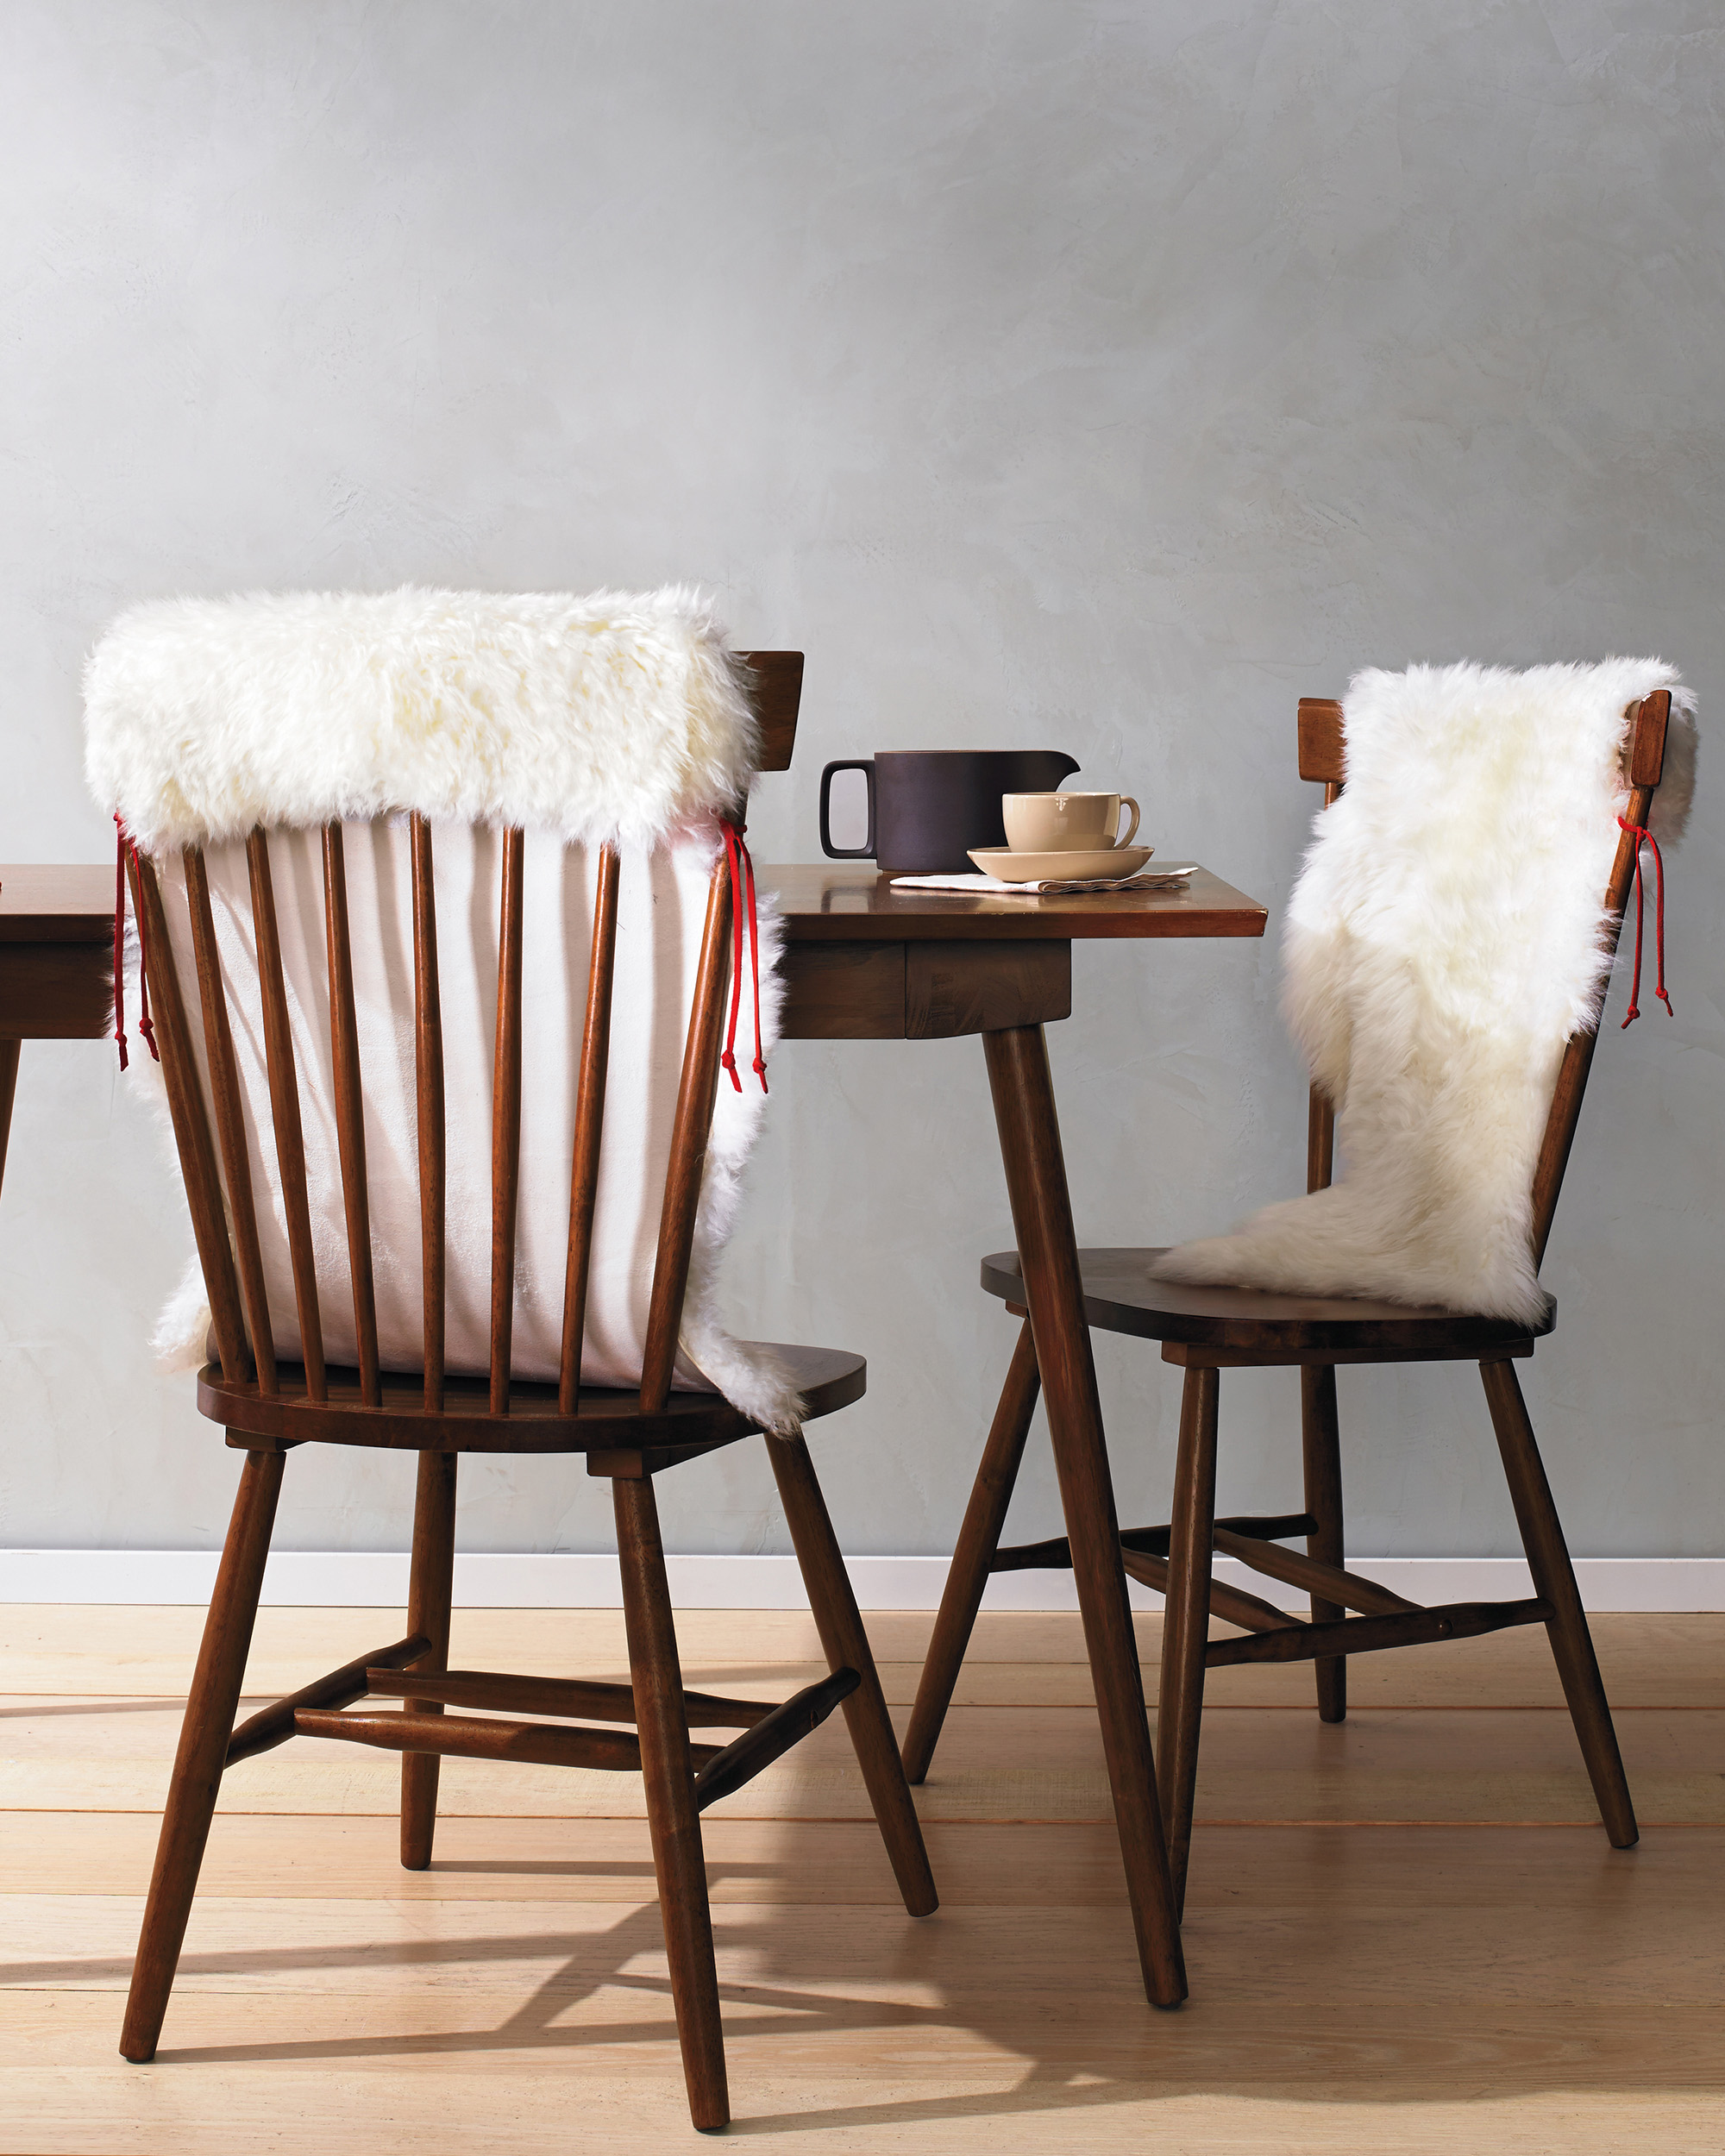 chairs with sheepskin covering